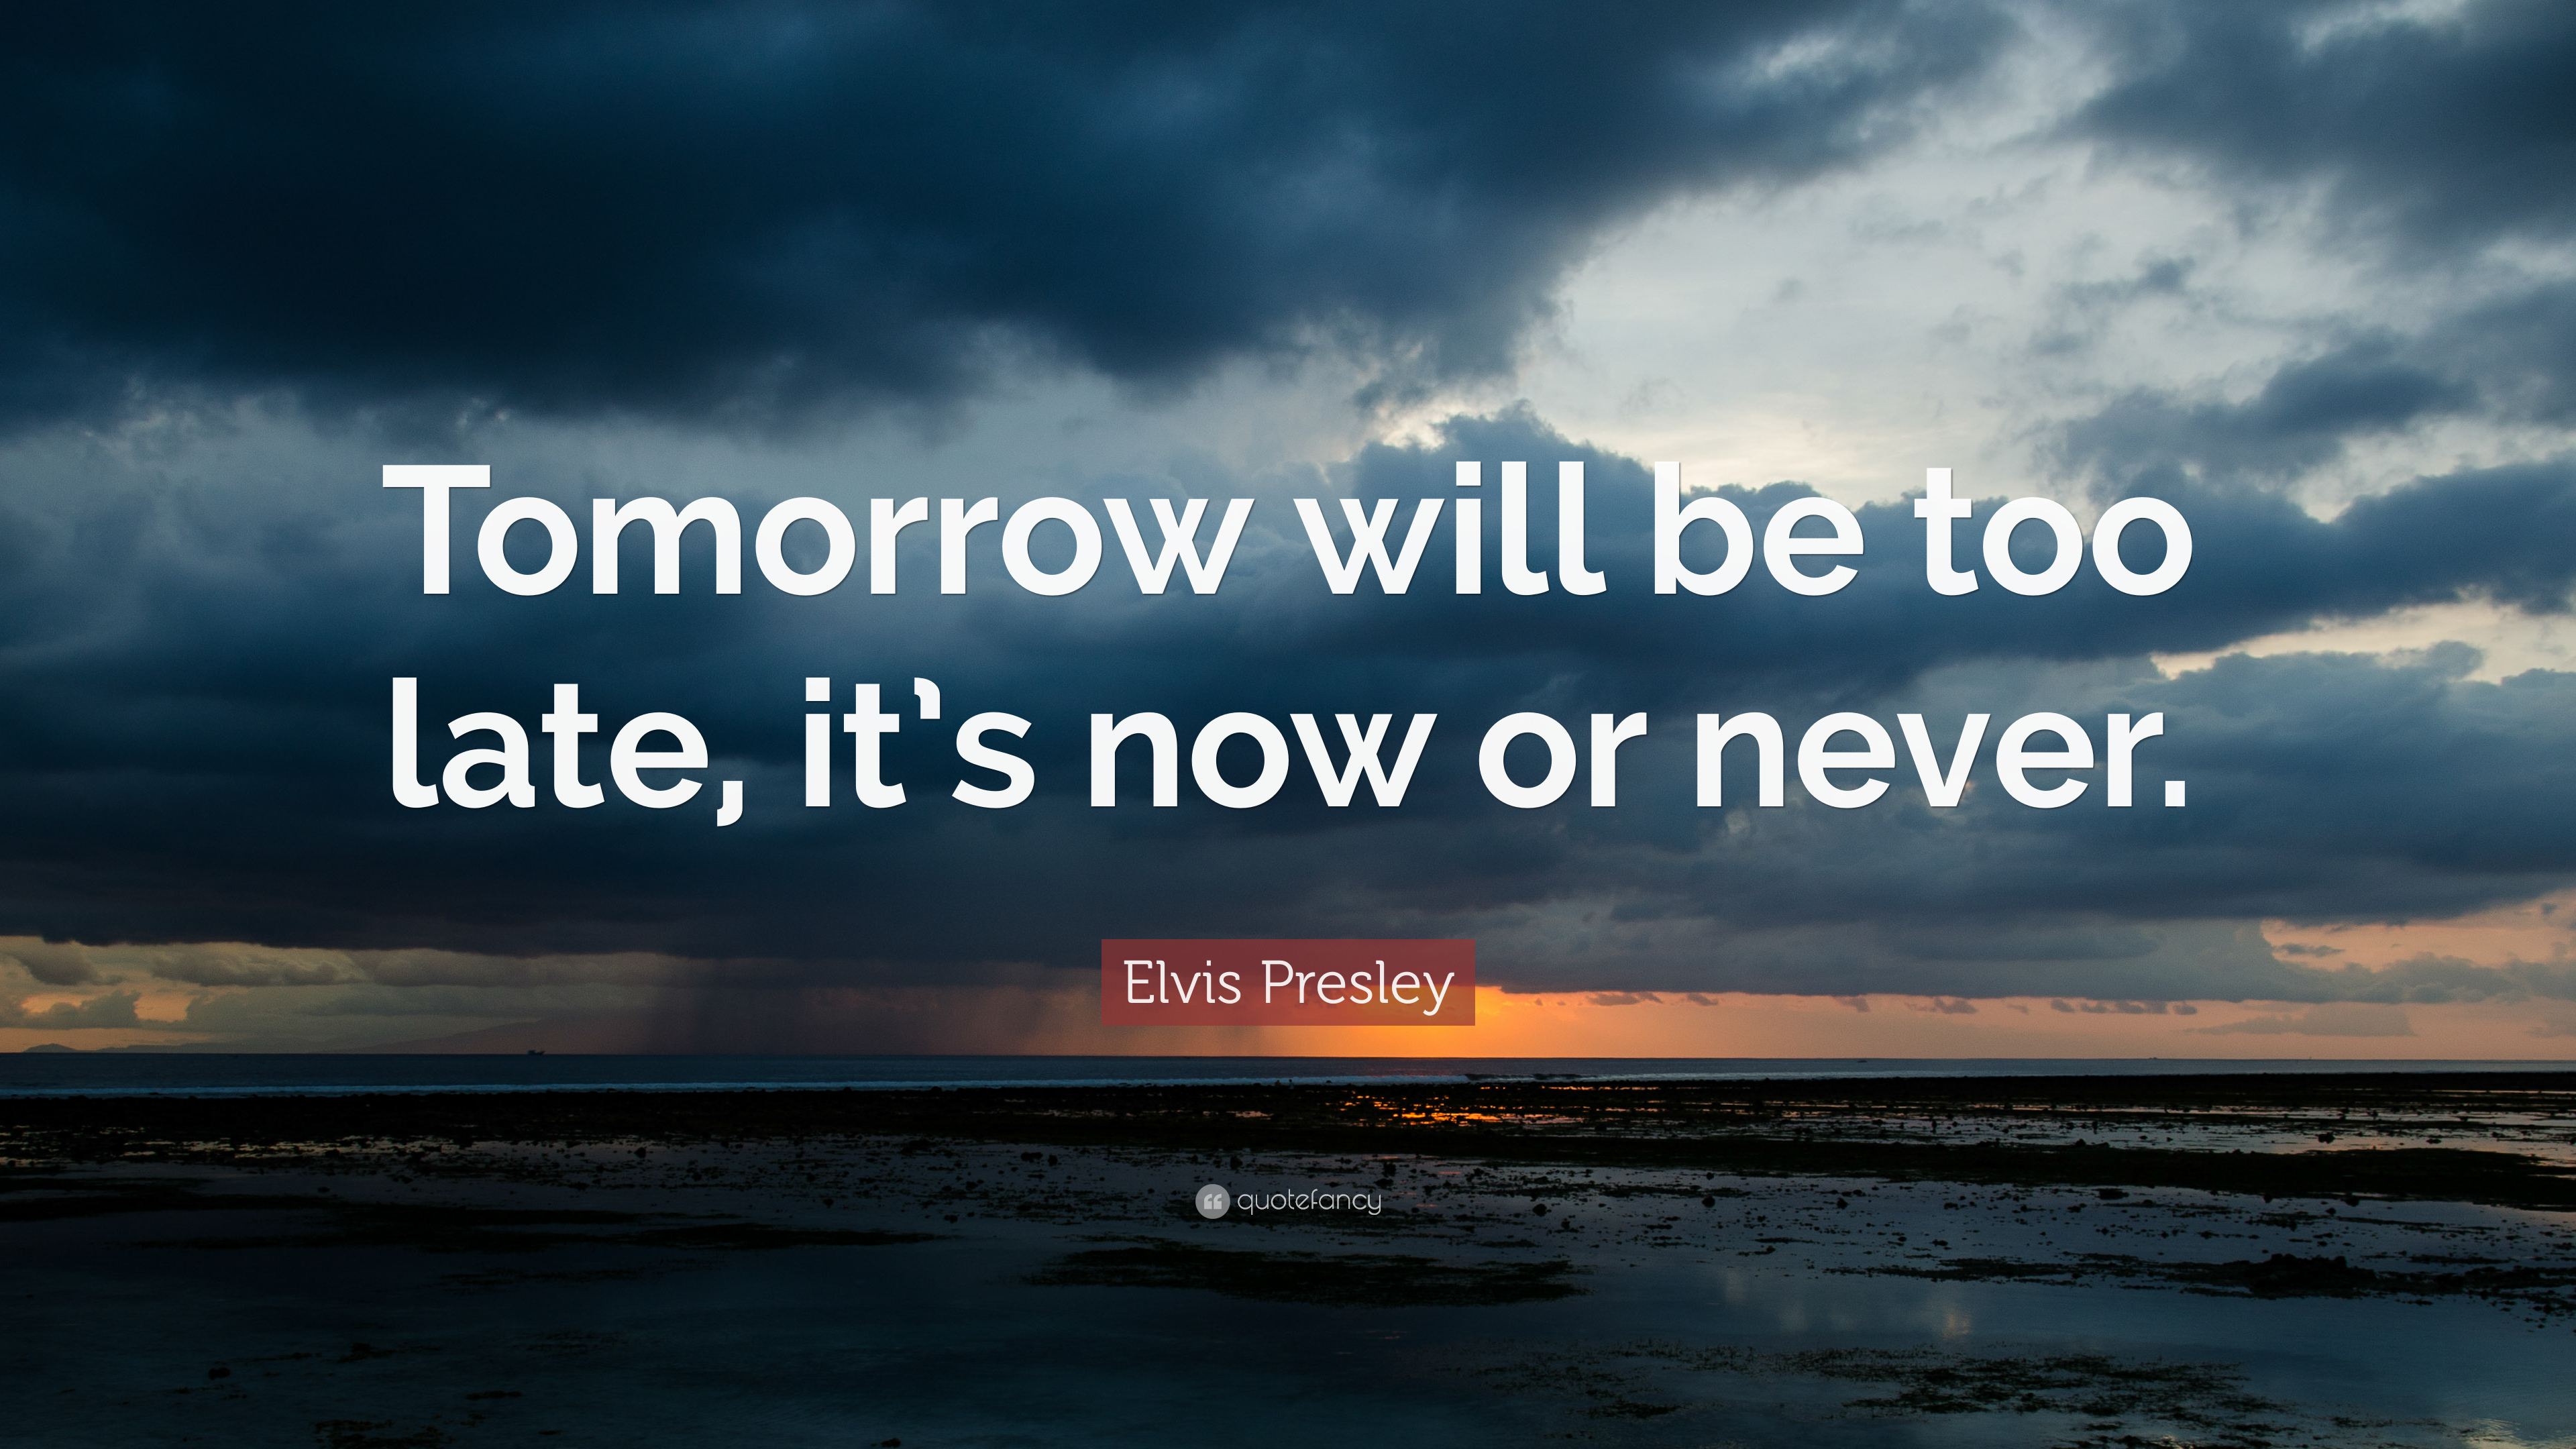 War Quote Wallpaper Hd Elvis Presley Quote Tomorrow Will Be Too Late It S Now